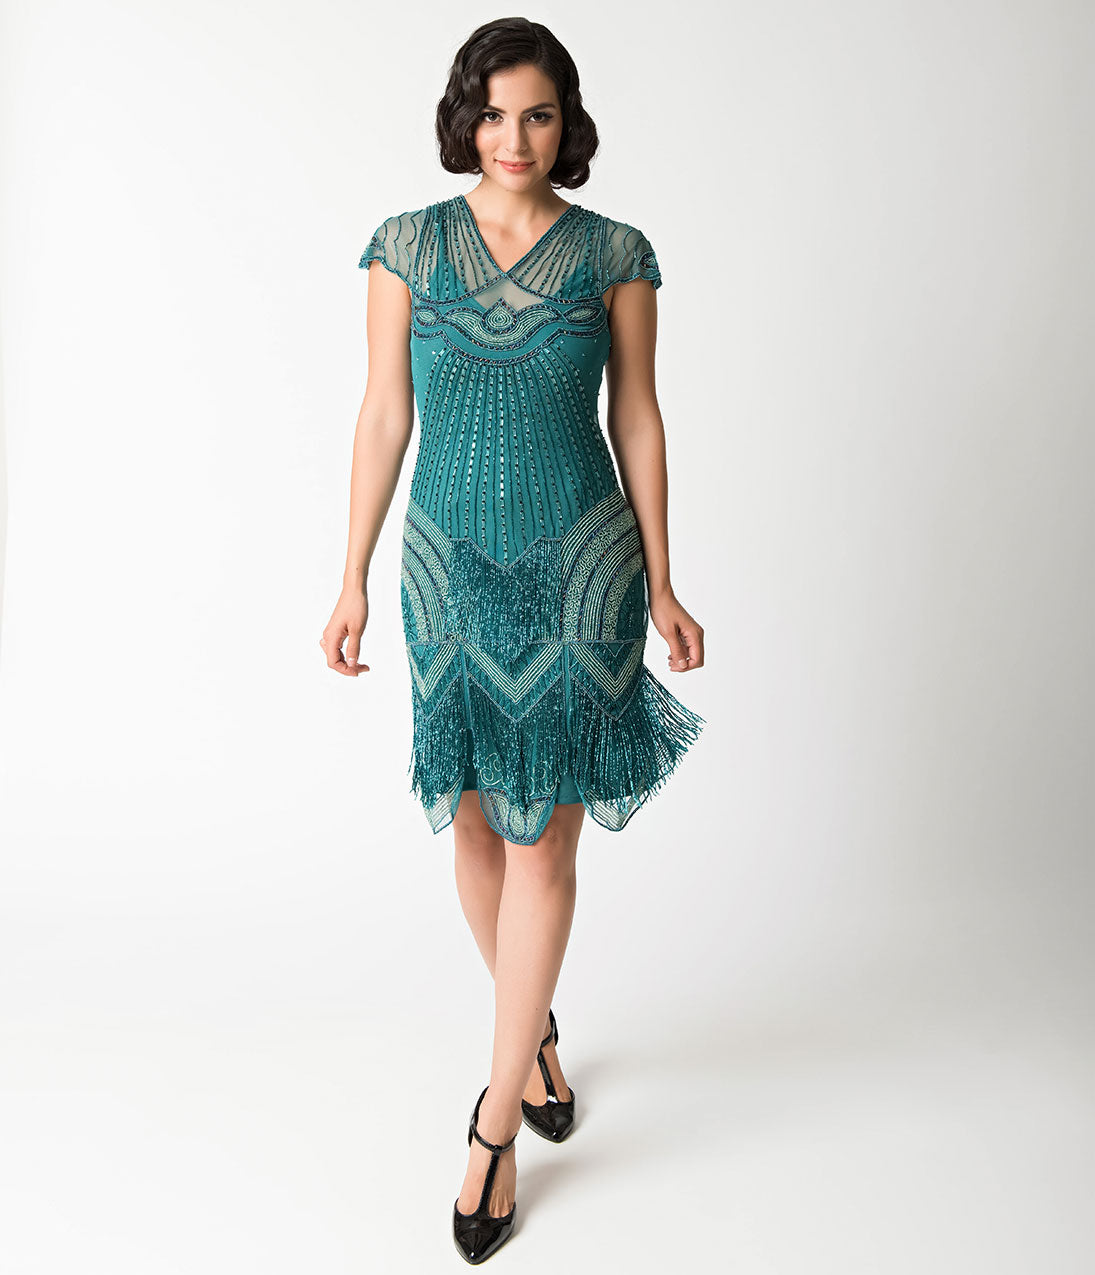 1920s Style Dresses, Flapper Dresses 1920s Style Teal Beaded Deco Cap Sleeve Beatrice Flapper Dress $166.00 AT vintagedancer.com